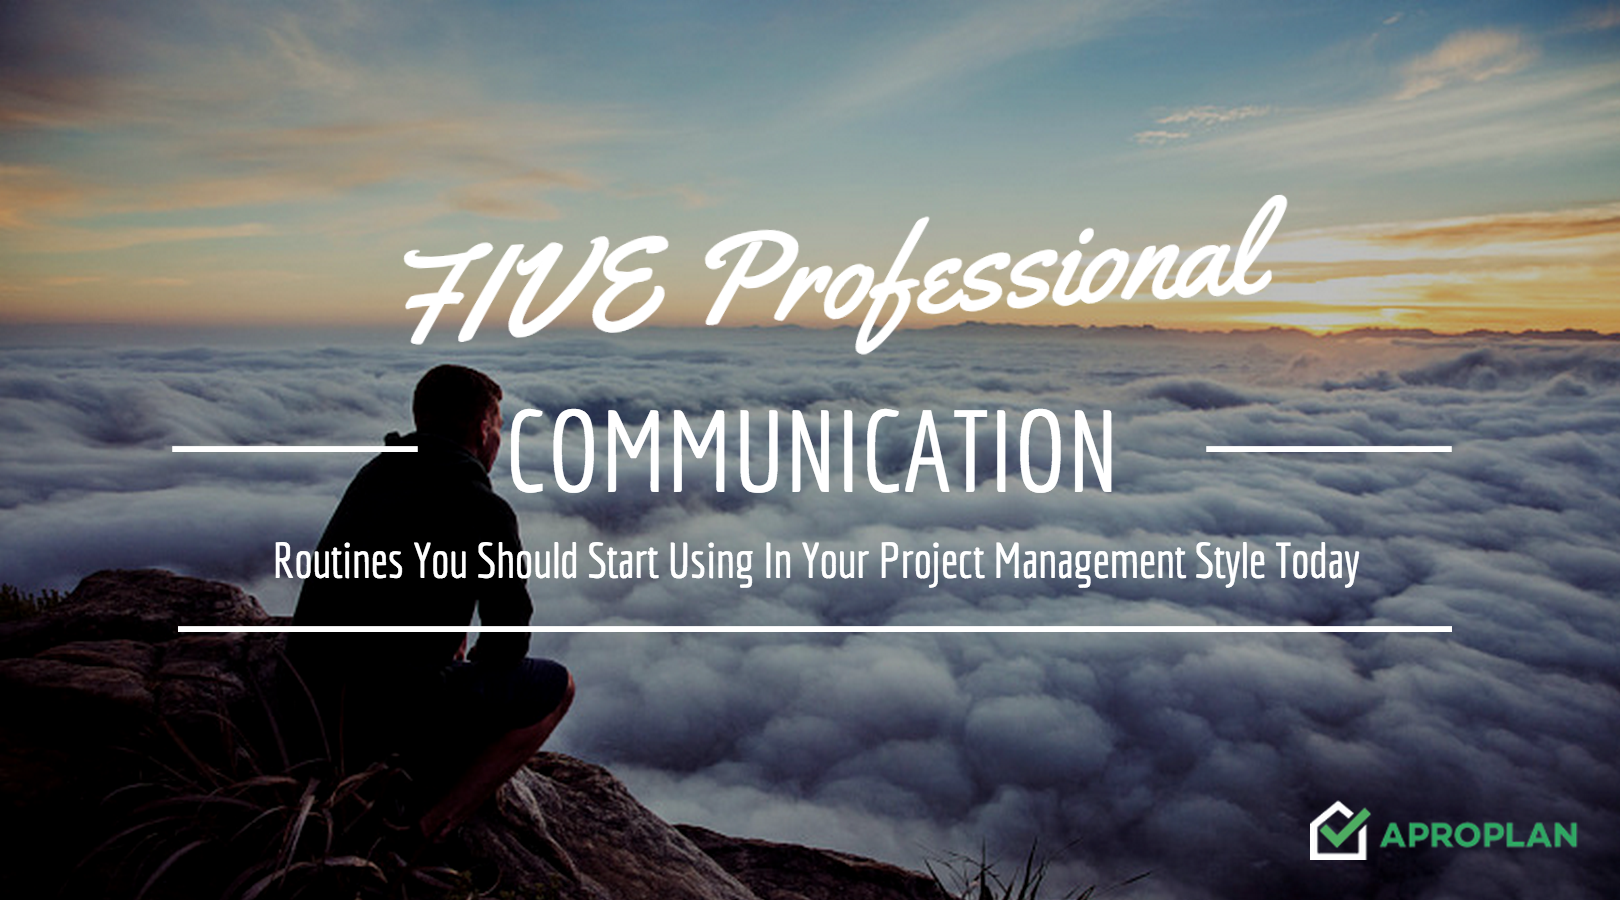 5 Professional Communication Routines You Should Start Using In Your Project Management Style Today